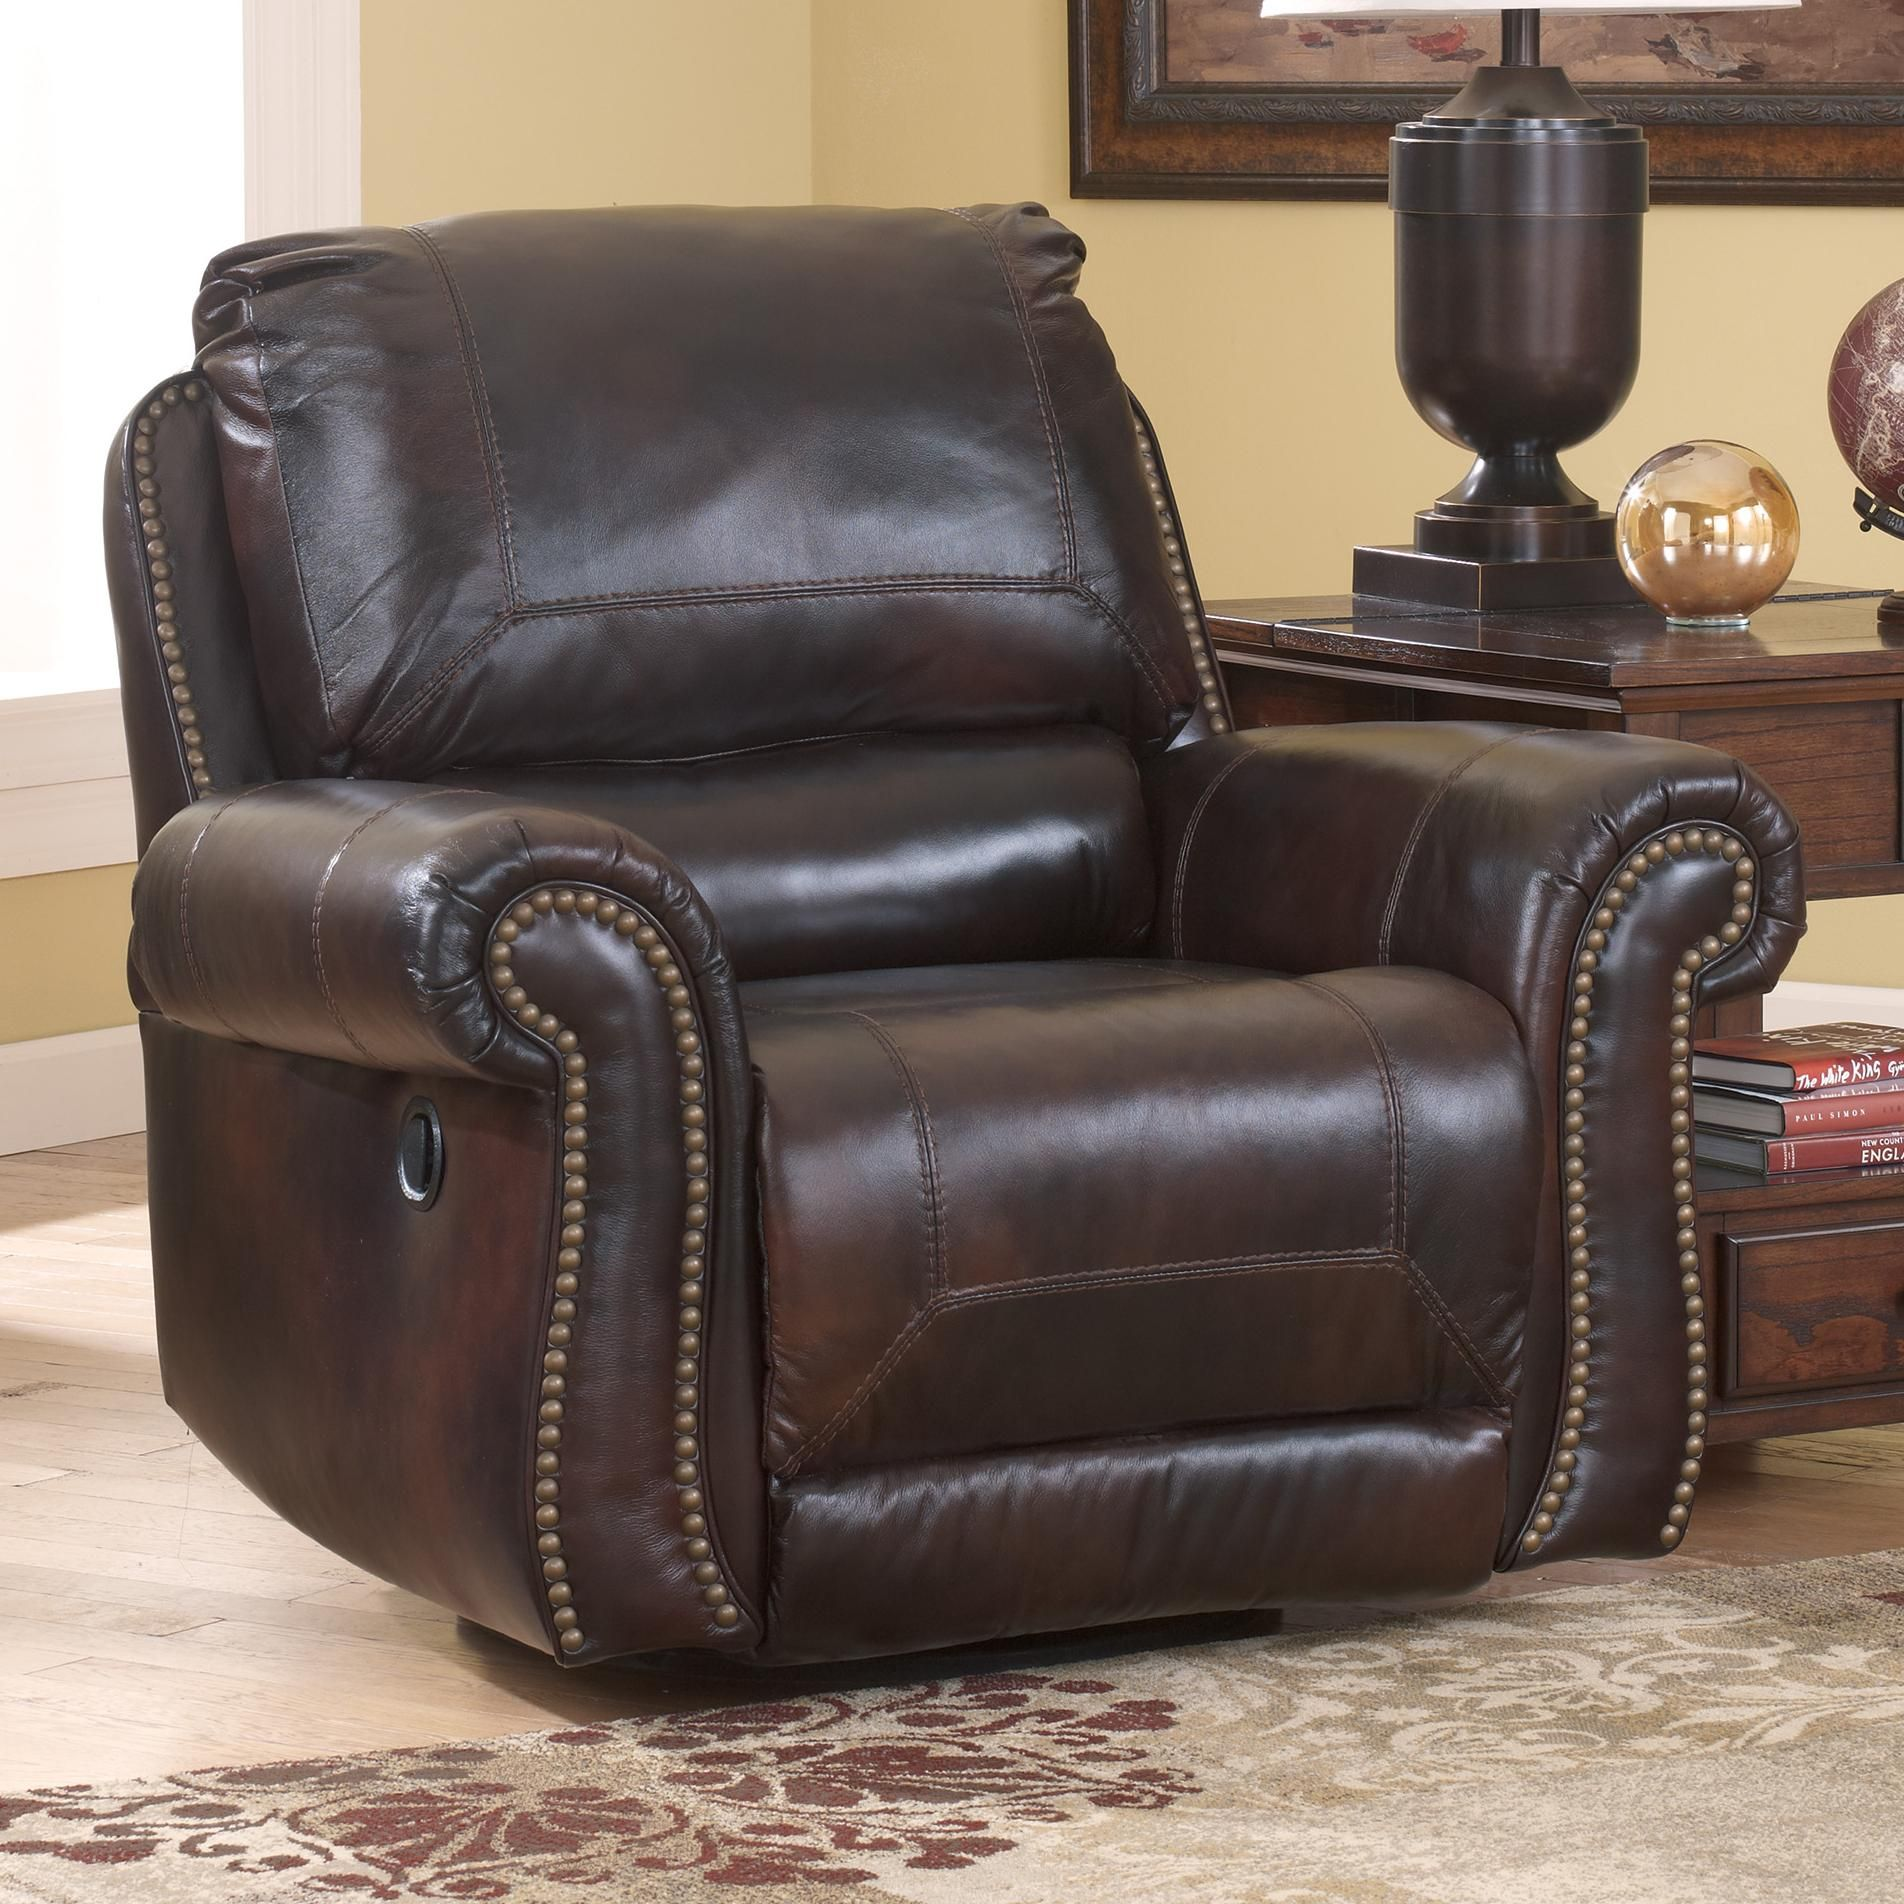 Ashley Furniture Leather Chair Dexpen Saddle Swivel Glider Recliner By Signature Design